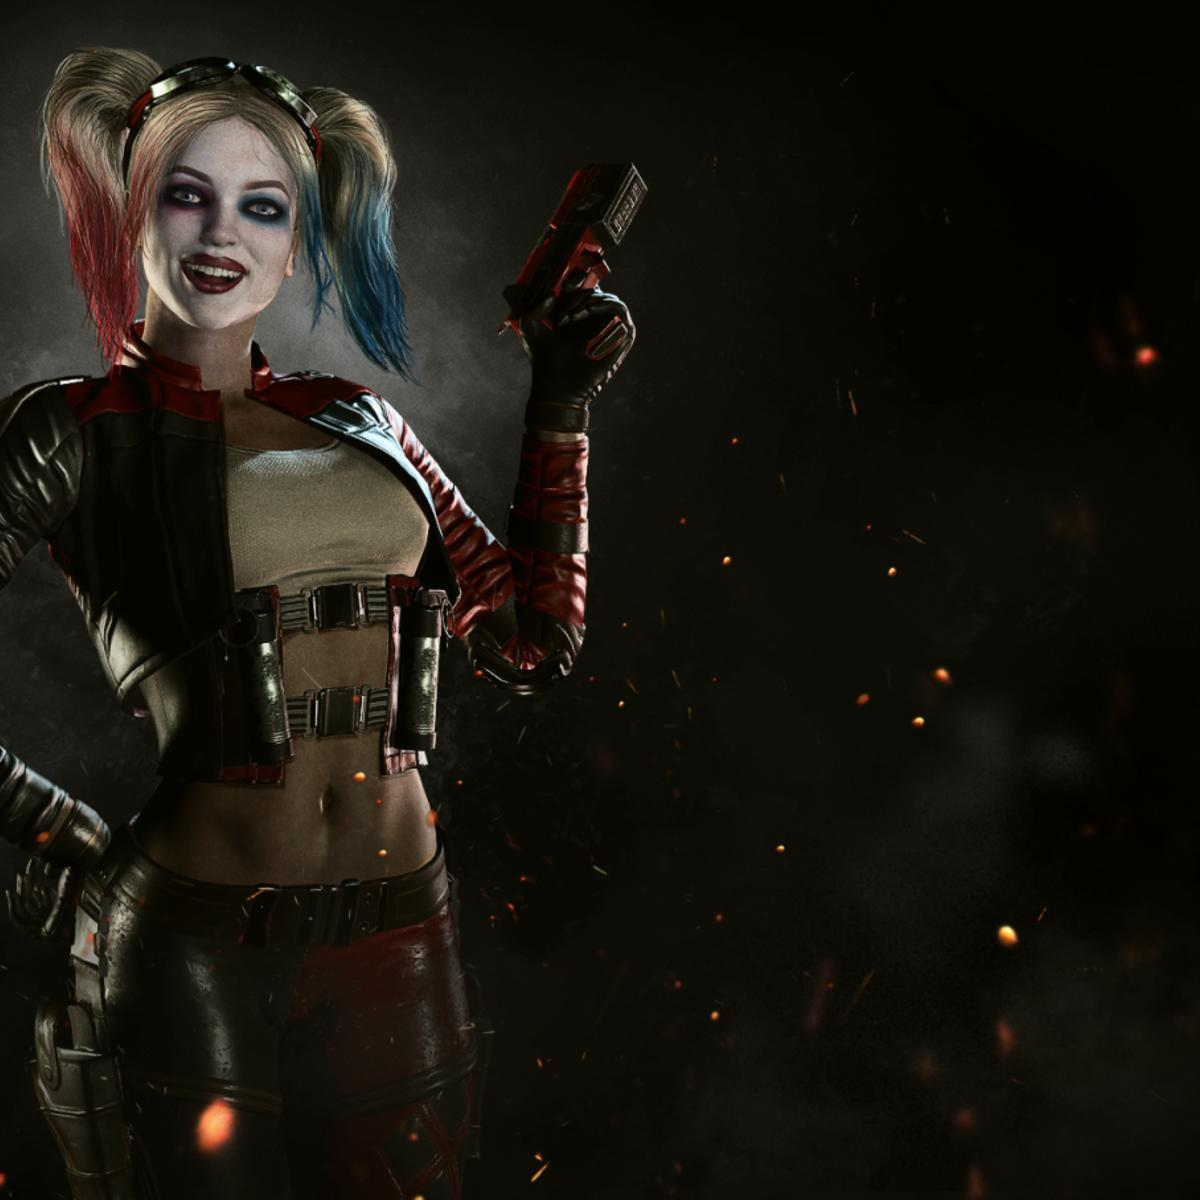 injustice-2-harley-quinn.png